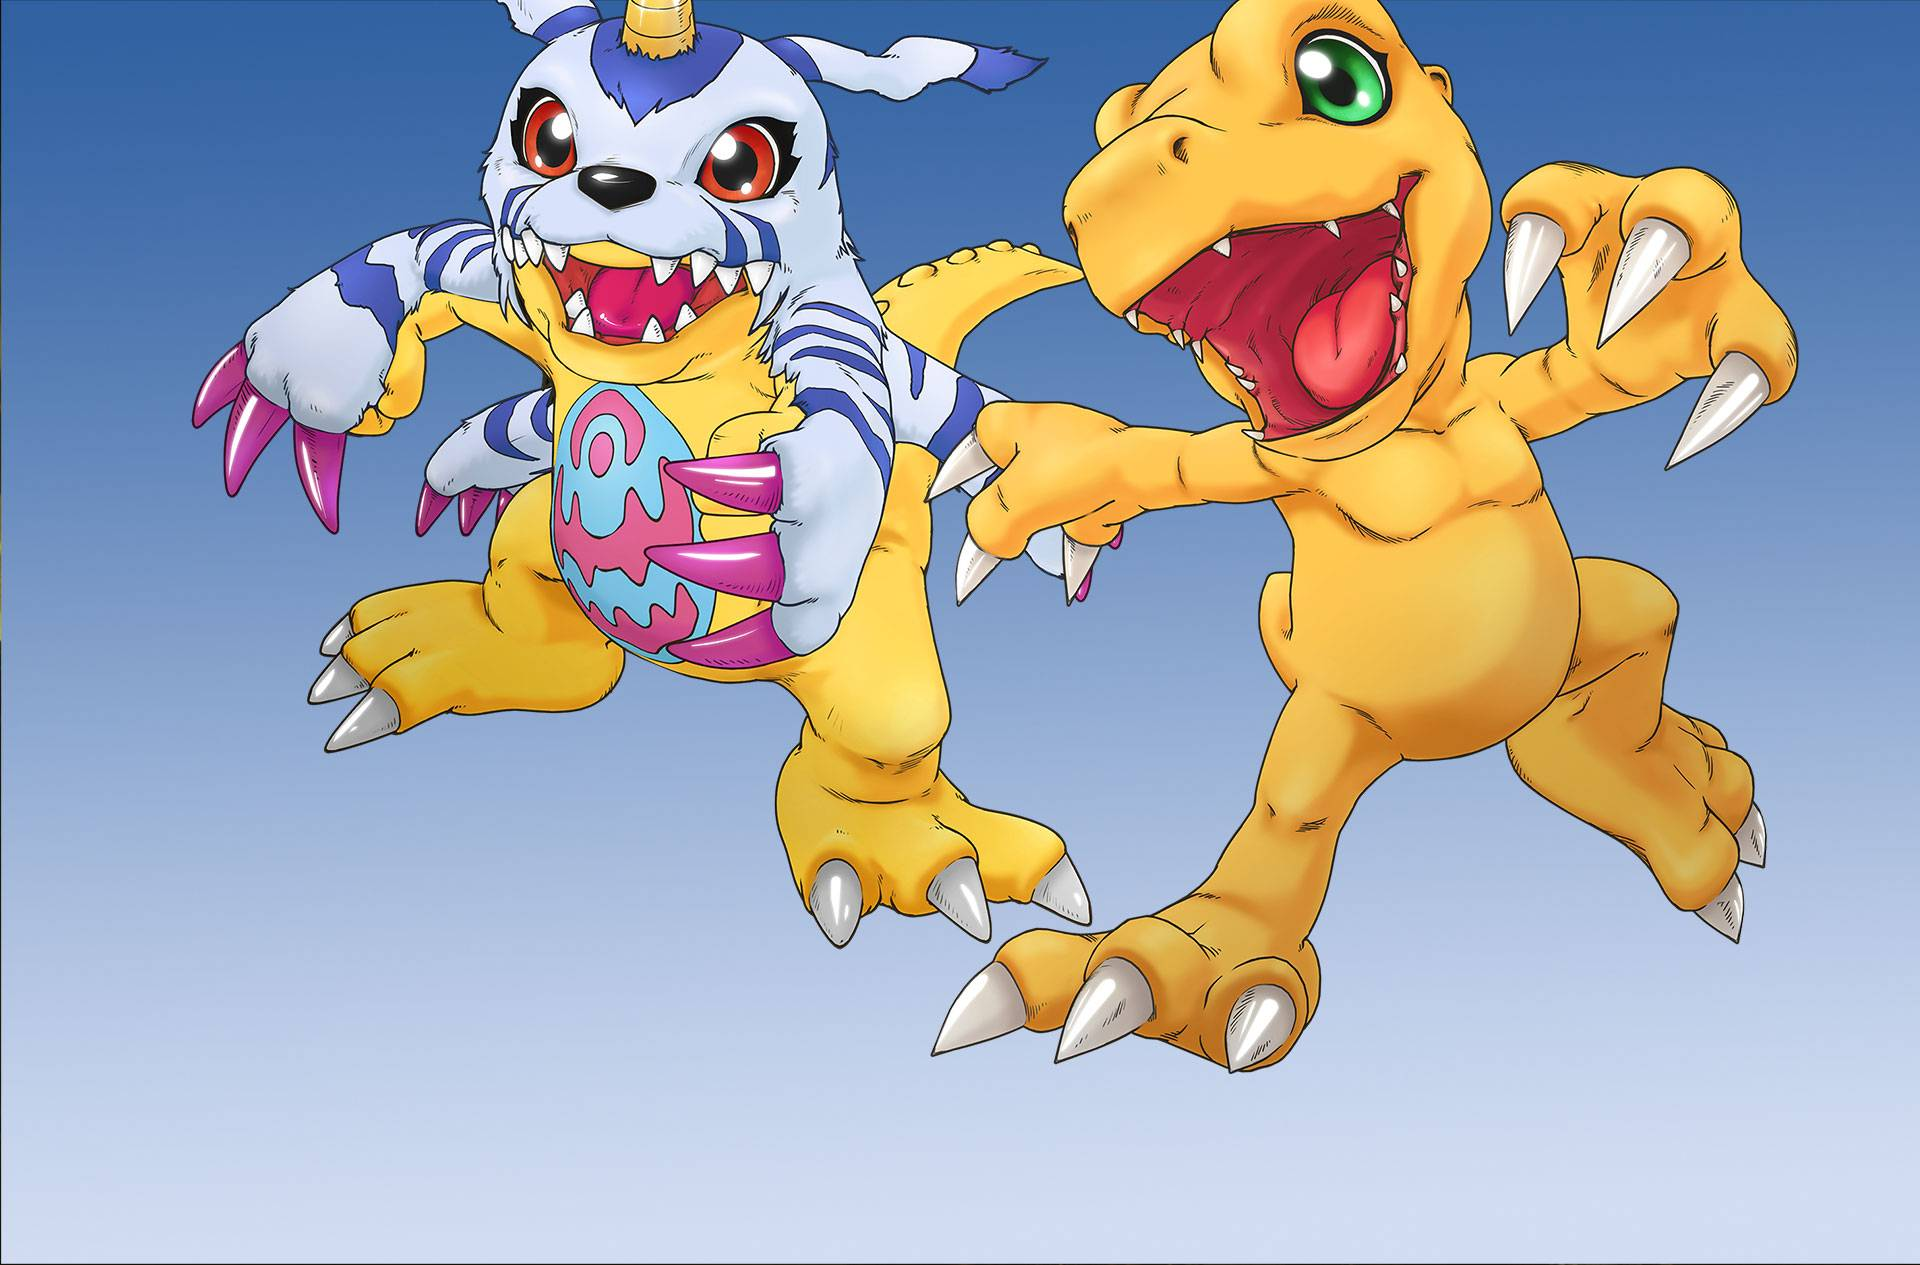 V-Jump Might Be Teasing New Digimon Game Announcement